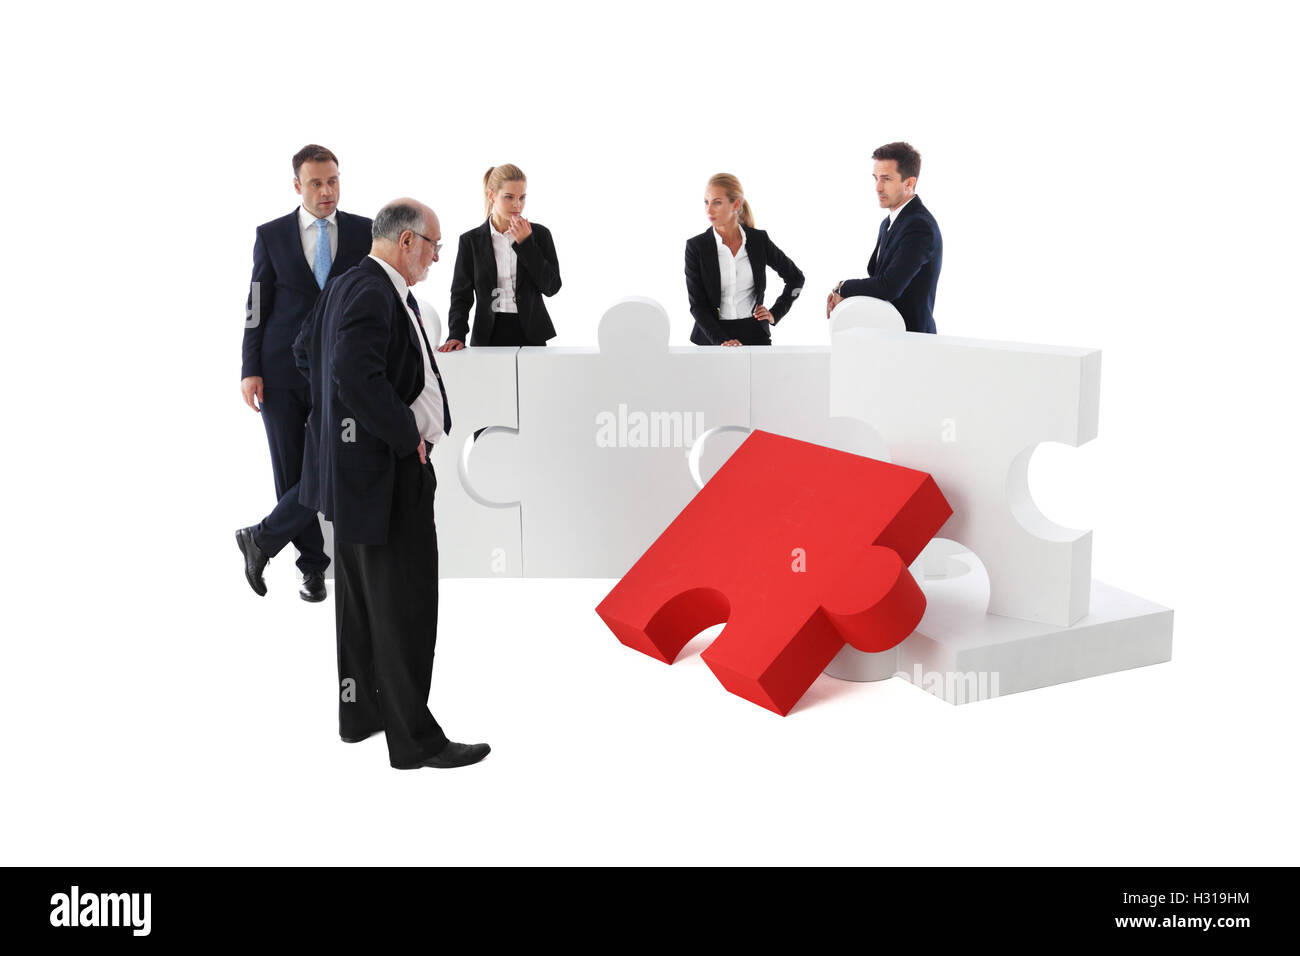 Business people team and jigsaw puzzle isolated on white background - Stock Image